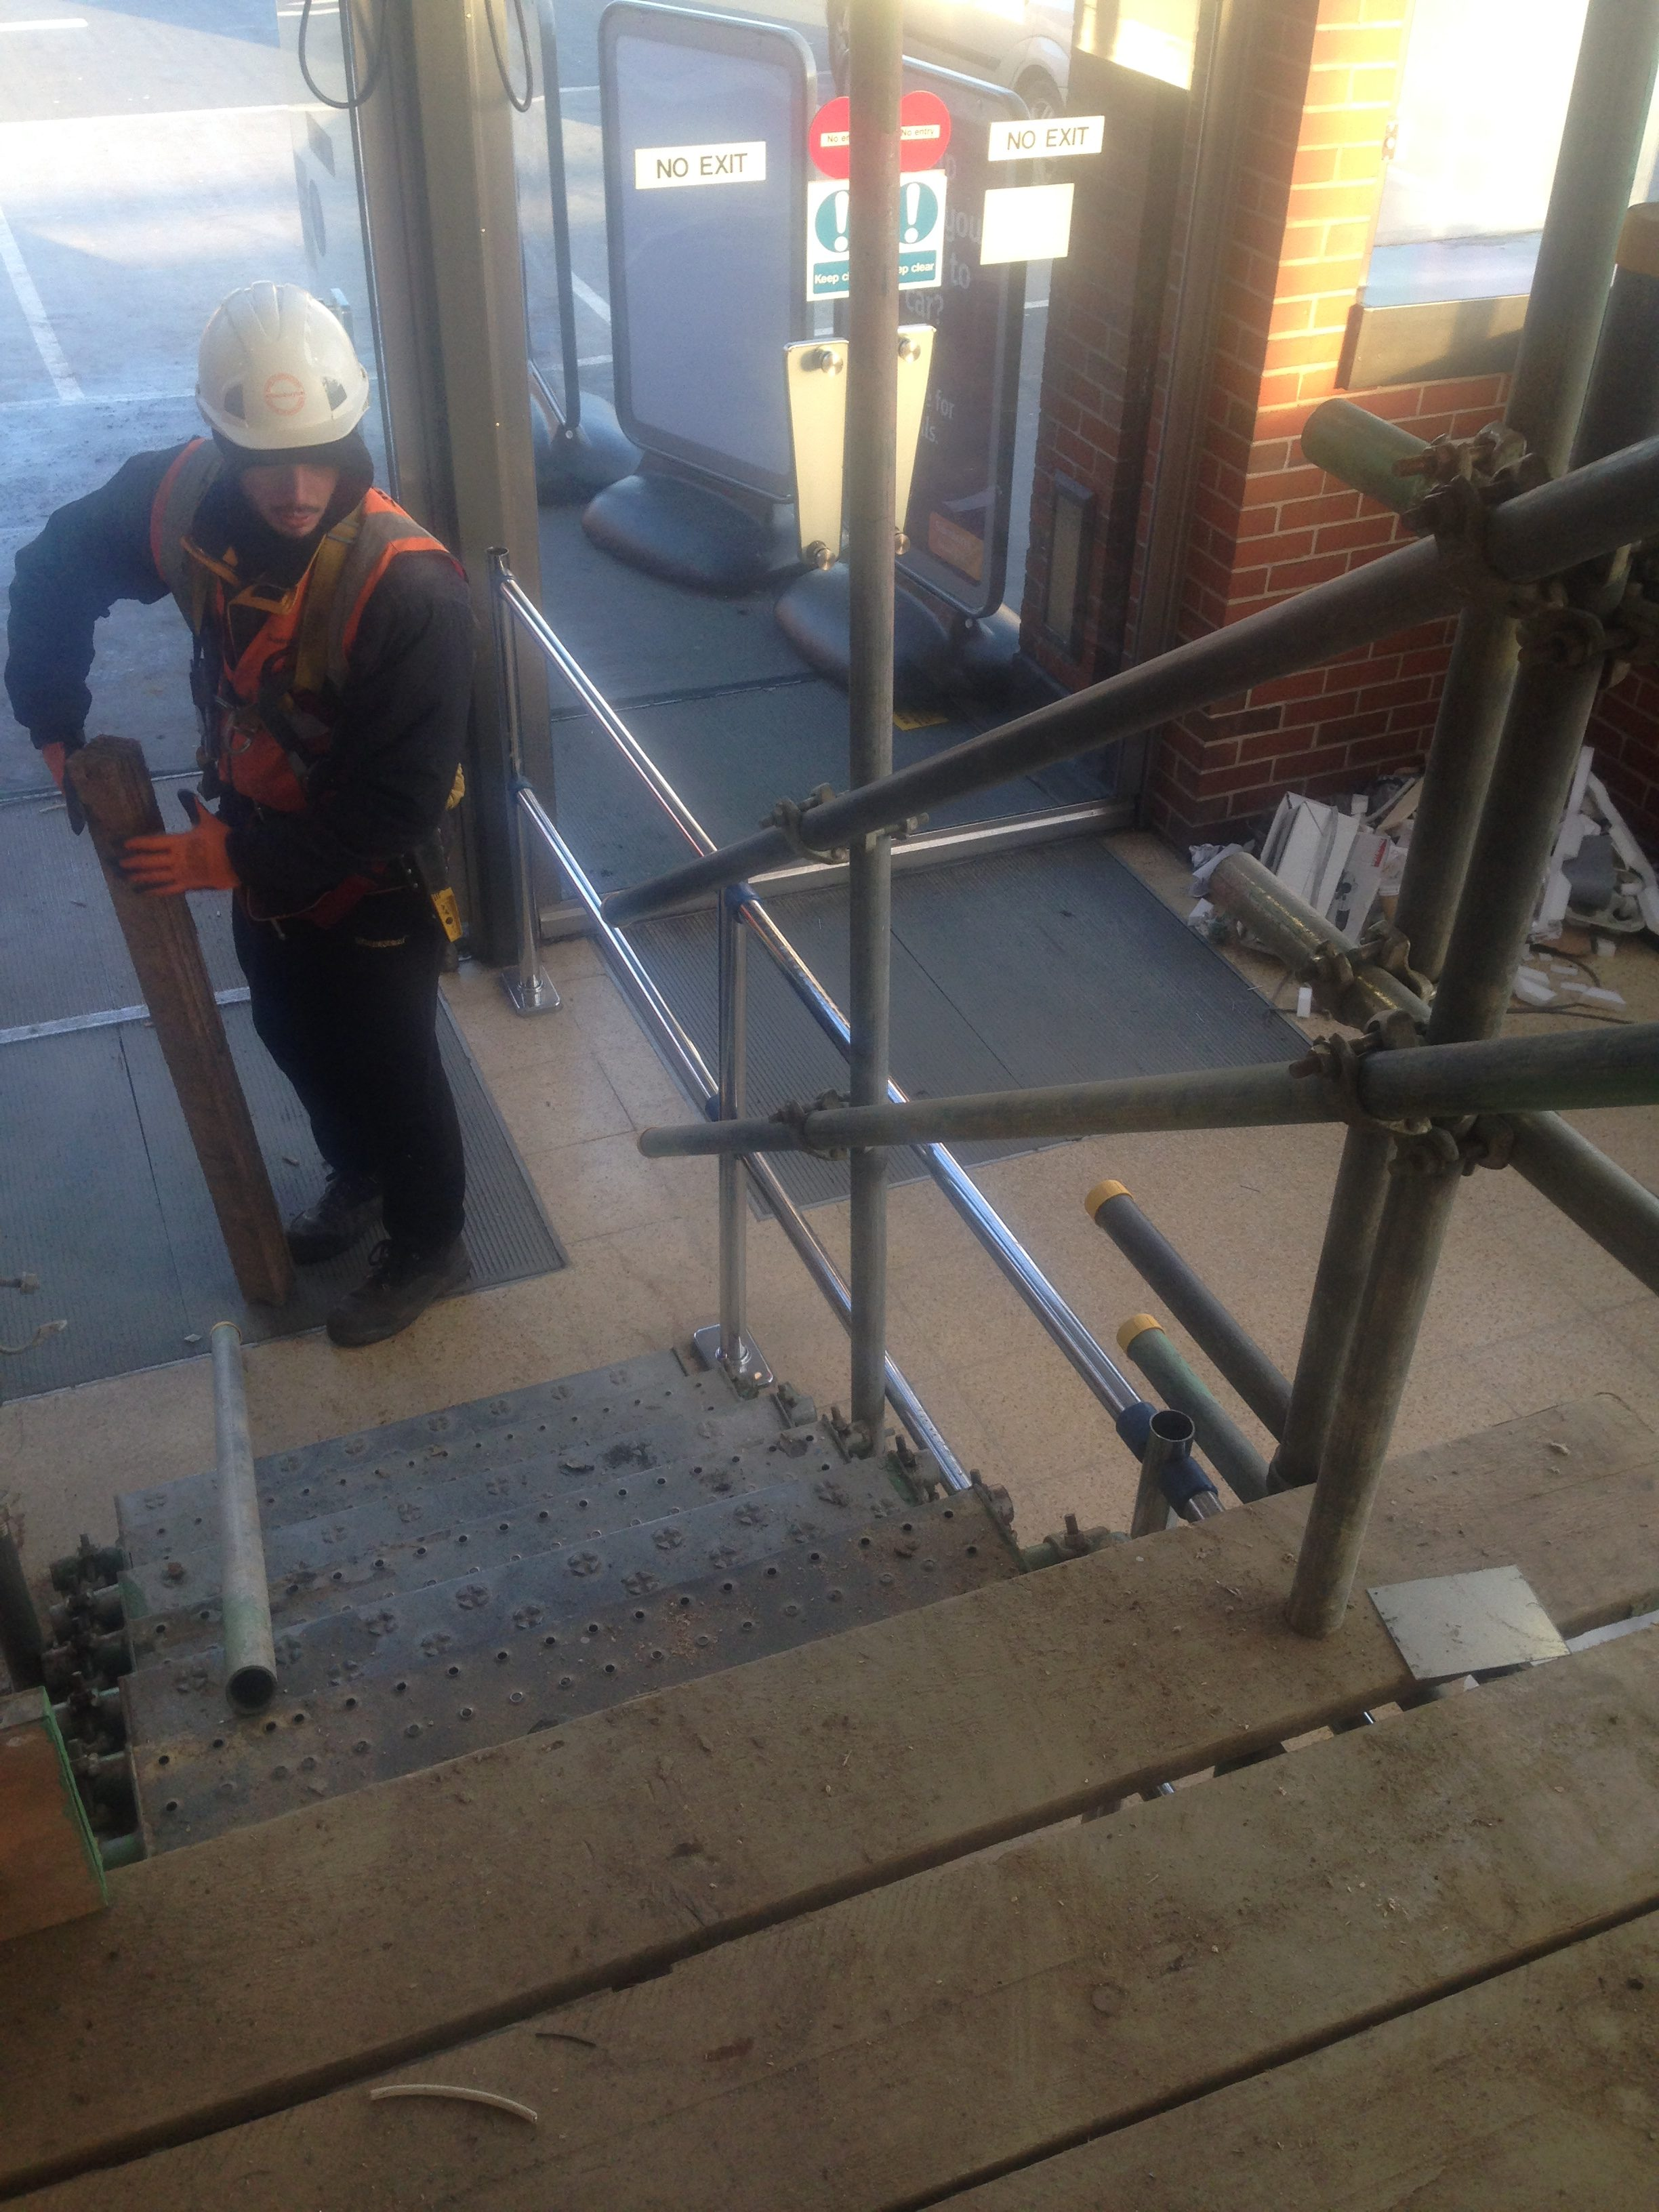 Understanding and foreseeing the working activities going to take place on the bird-cage scaffold, LSS was forward thinking on the correct access and egress allowing all trades and materials to move with ease.